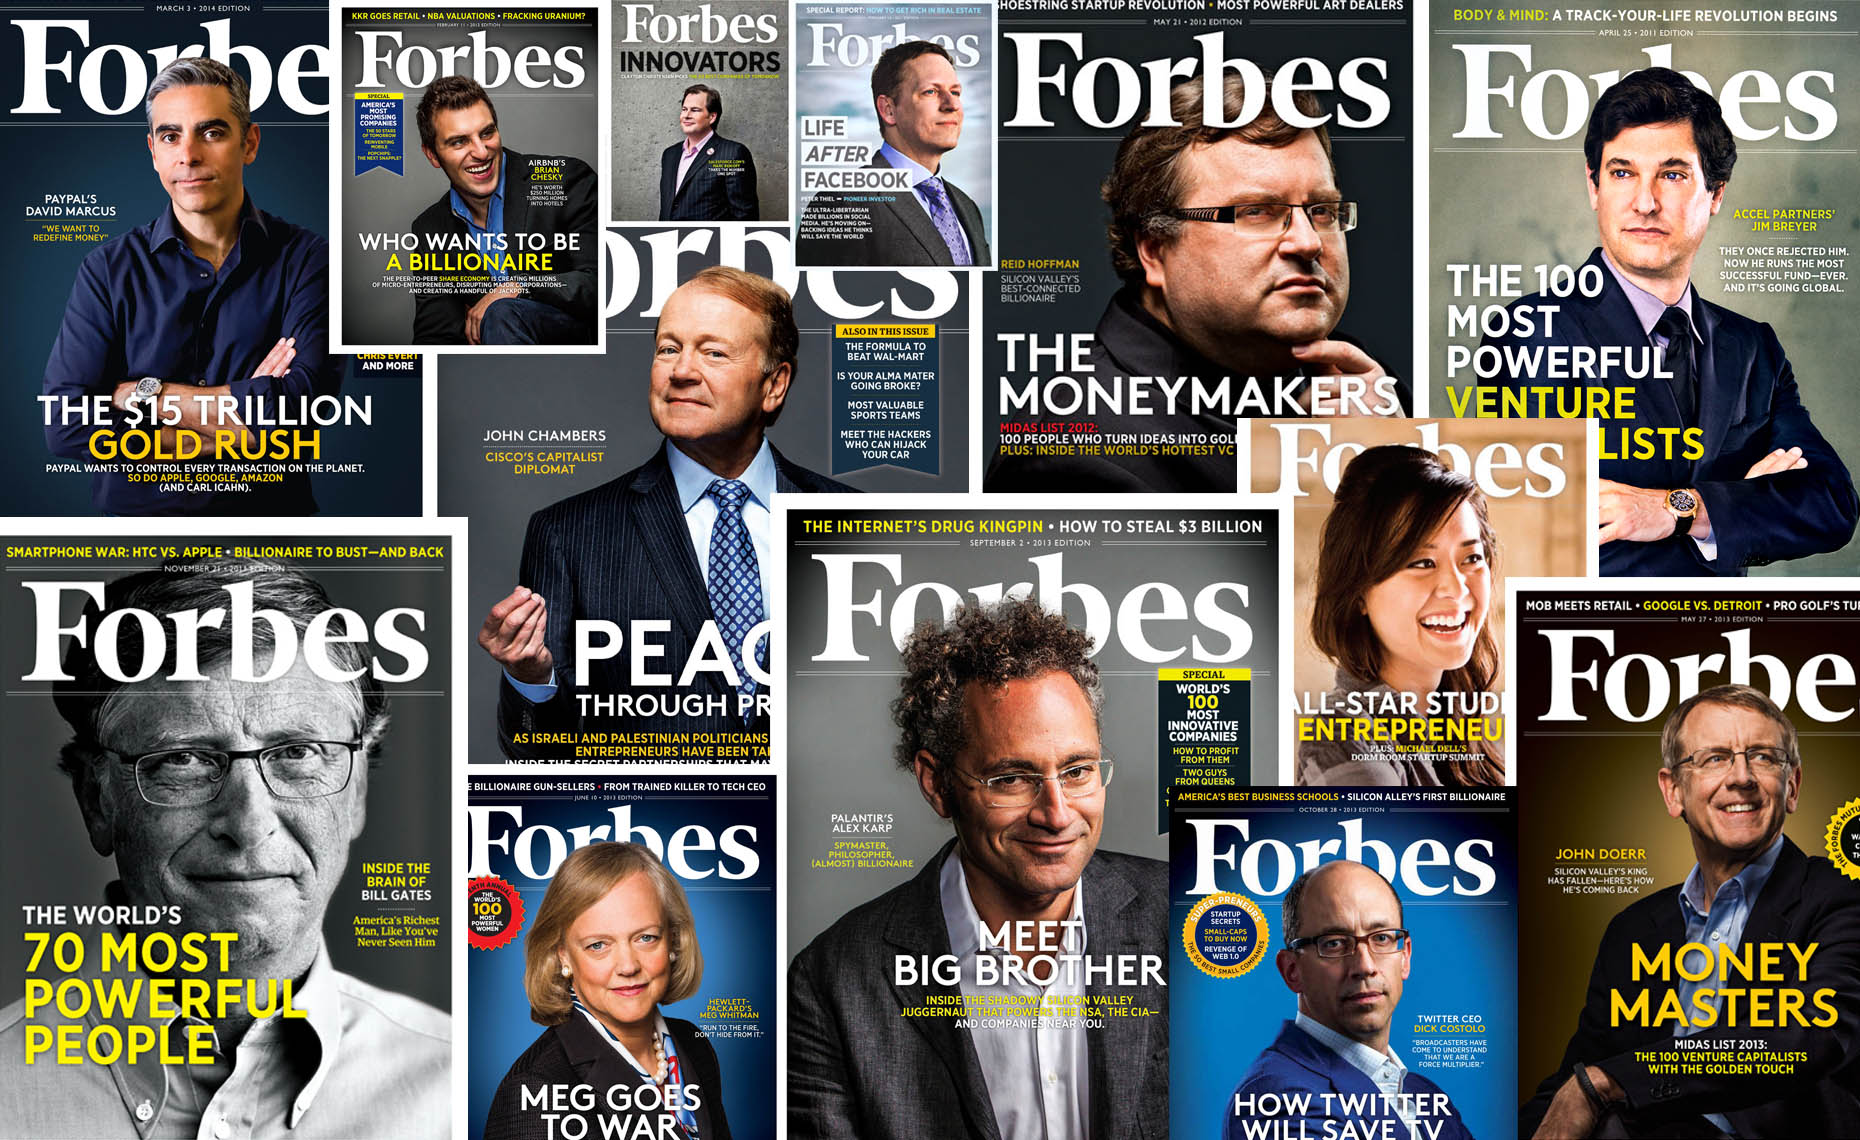 forbes magazine covers photographed by Eric Millette